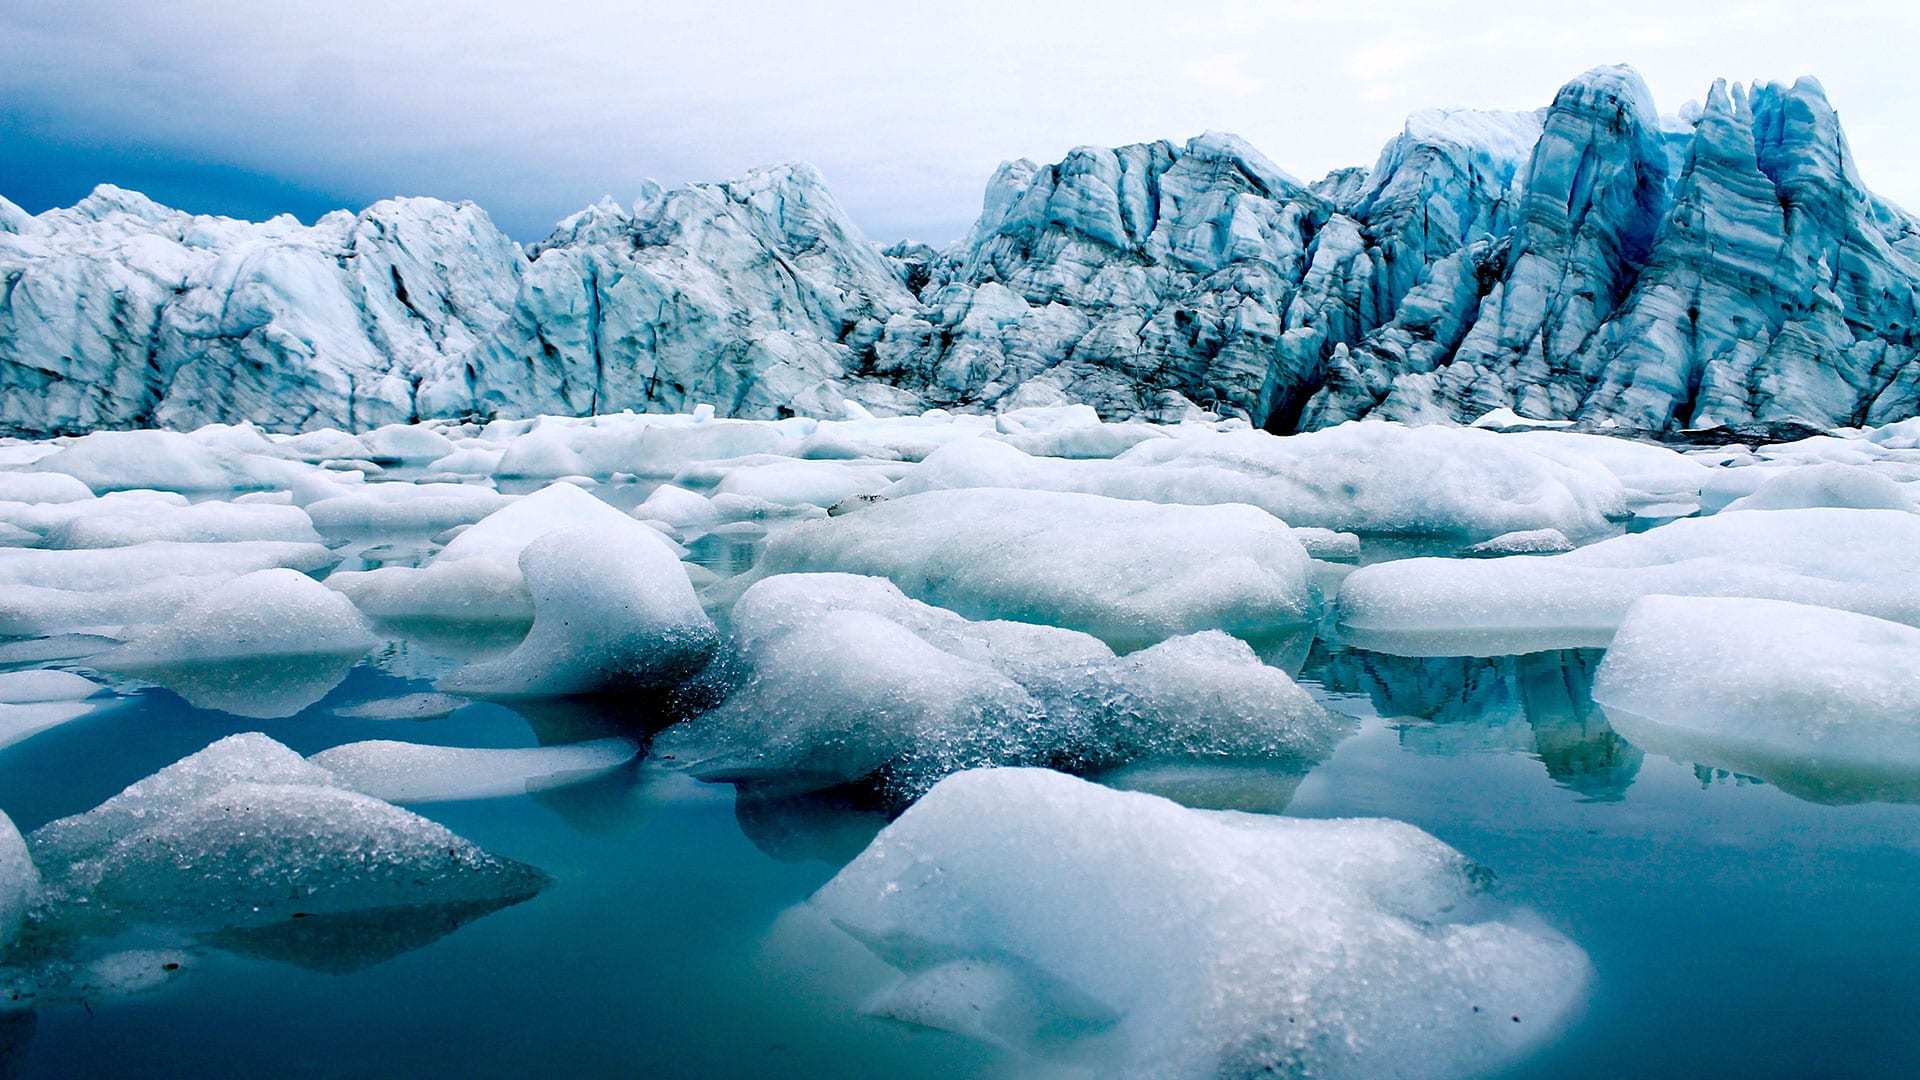 Summertime ice melt along the Greenland Ice Sheet has sped up in recent decades, causing more fresh water to flow into the surrounding ocean. The fresh water carries nutrients and organic carbon, which can affect the growth rates of marine microbes. MIT-WHOI Joint Program graduate student Matt Osman and WHOI associate scientist Sarah Das, along with scientists from the University of Alberta, are studying the rates at which microbes living in these ocean waters metabolize and grow in order to determine how future melting may affect ecosystems and carbon storage in the ocean. (Photo by Matt Osman, Woods Hole Oceanographic Institution)